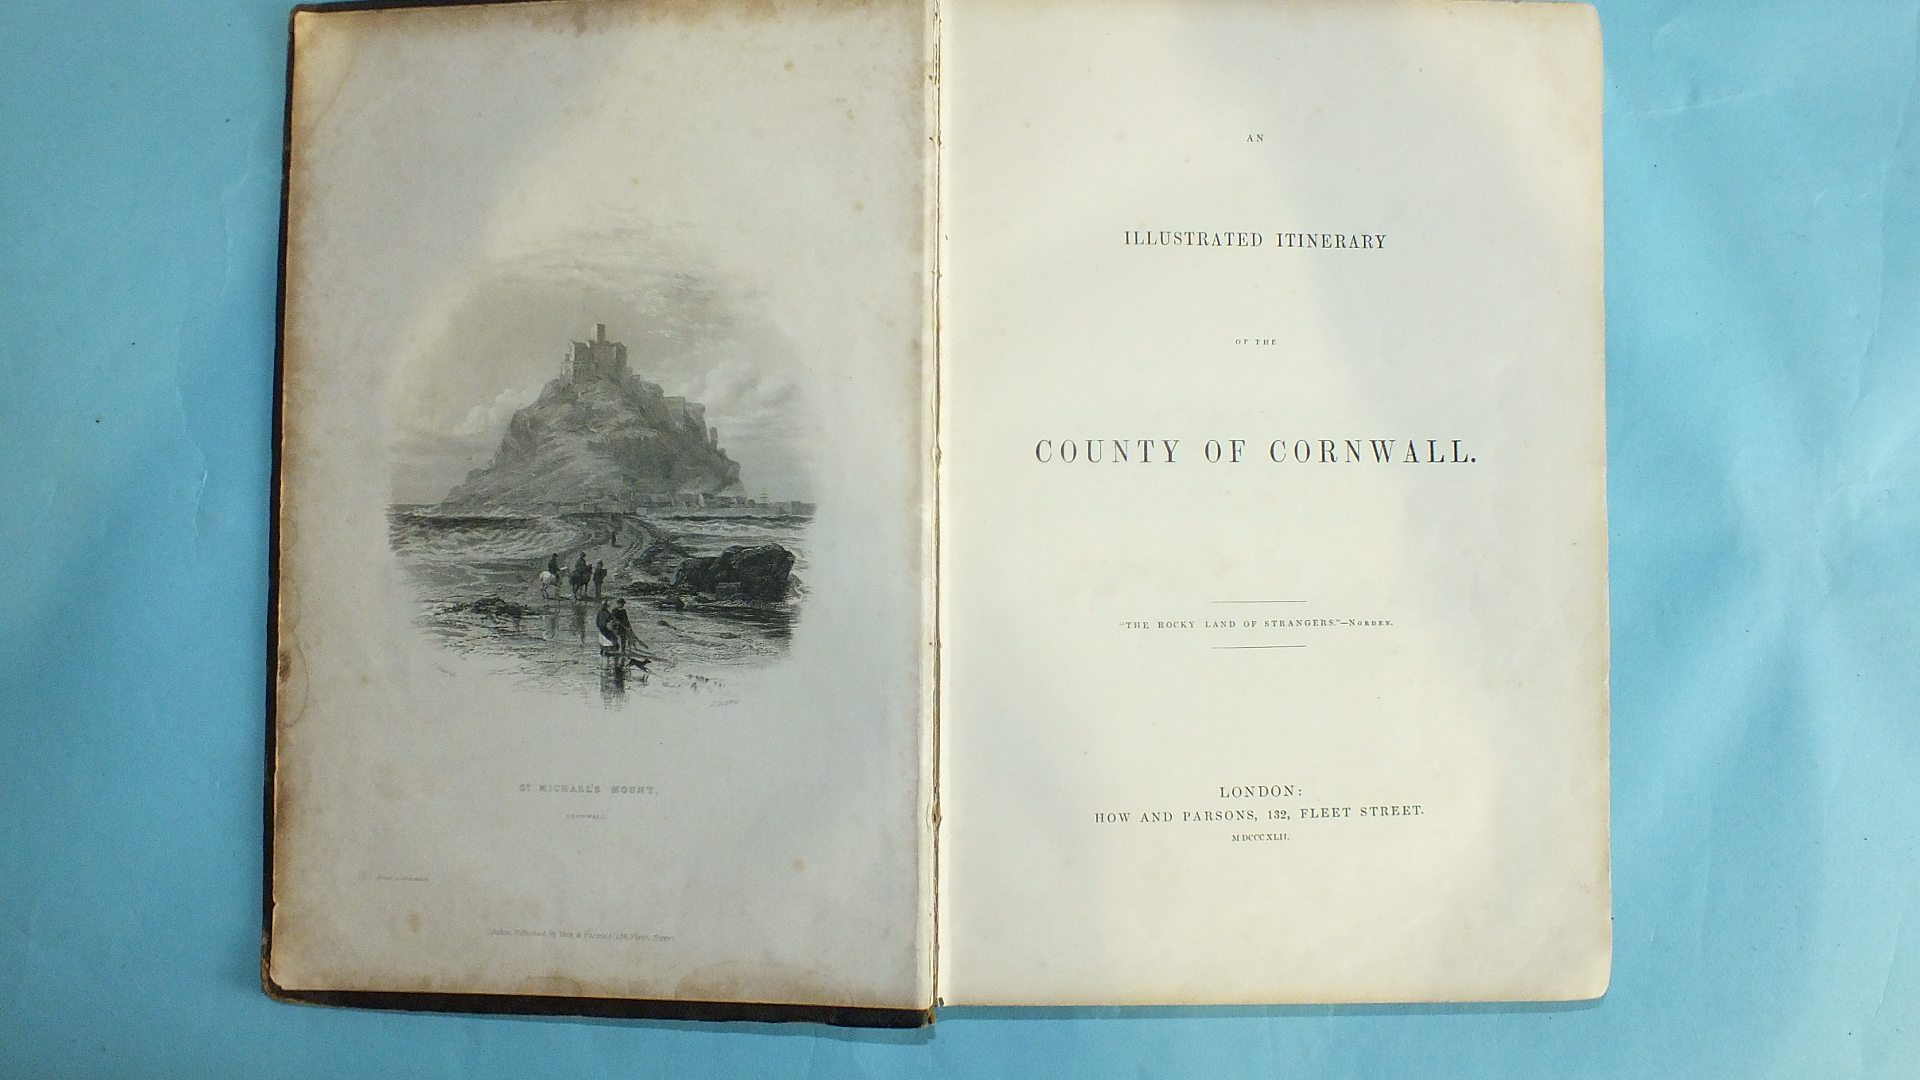 Lot 36 - Redding (Cyrus), An Illustrated Itinerary of the County of Cornwall, engr frontis, no map, plts,